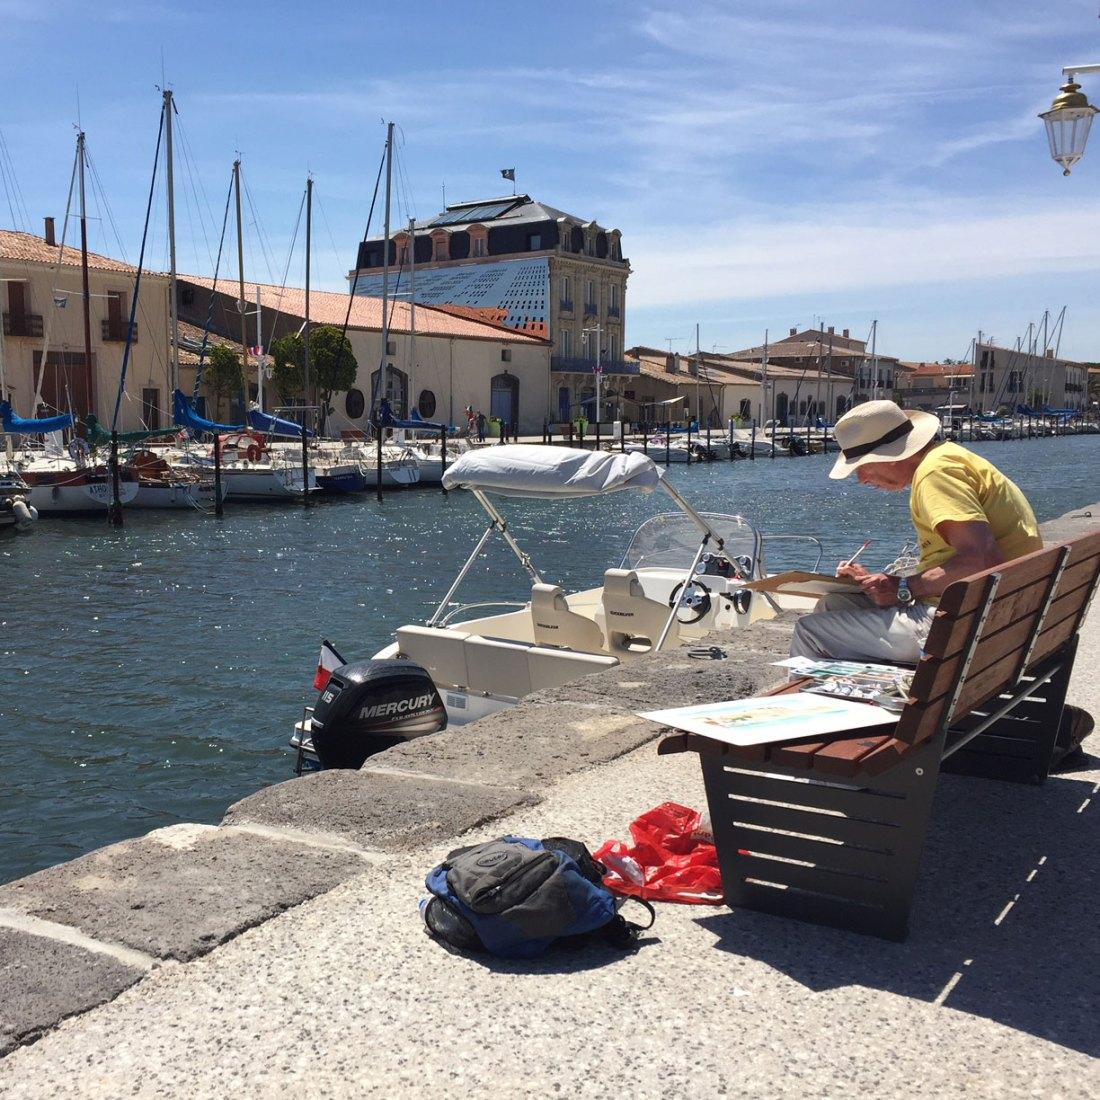 Marseillan Port - 8 day painting holiday